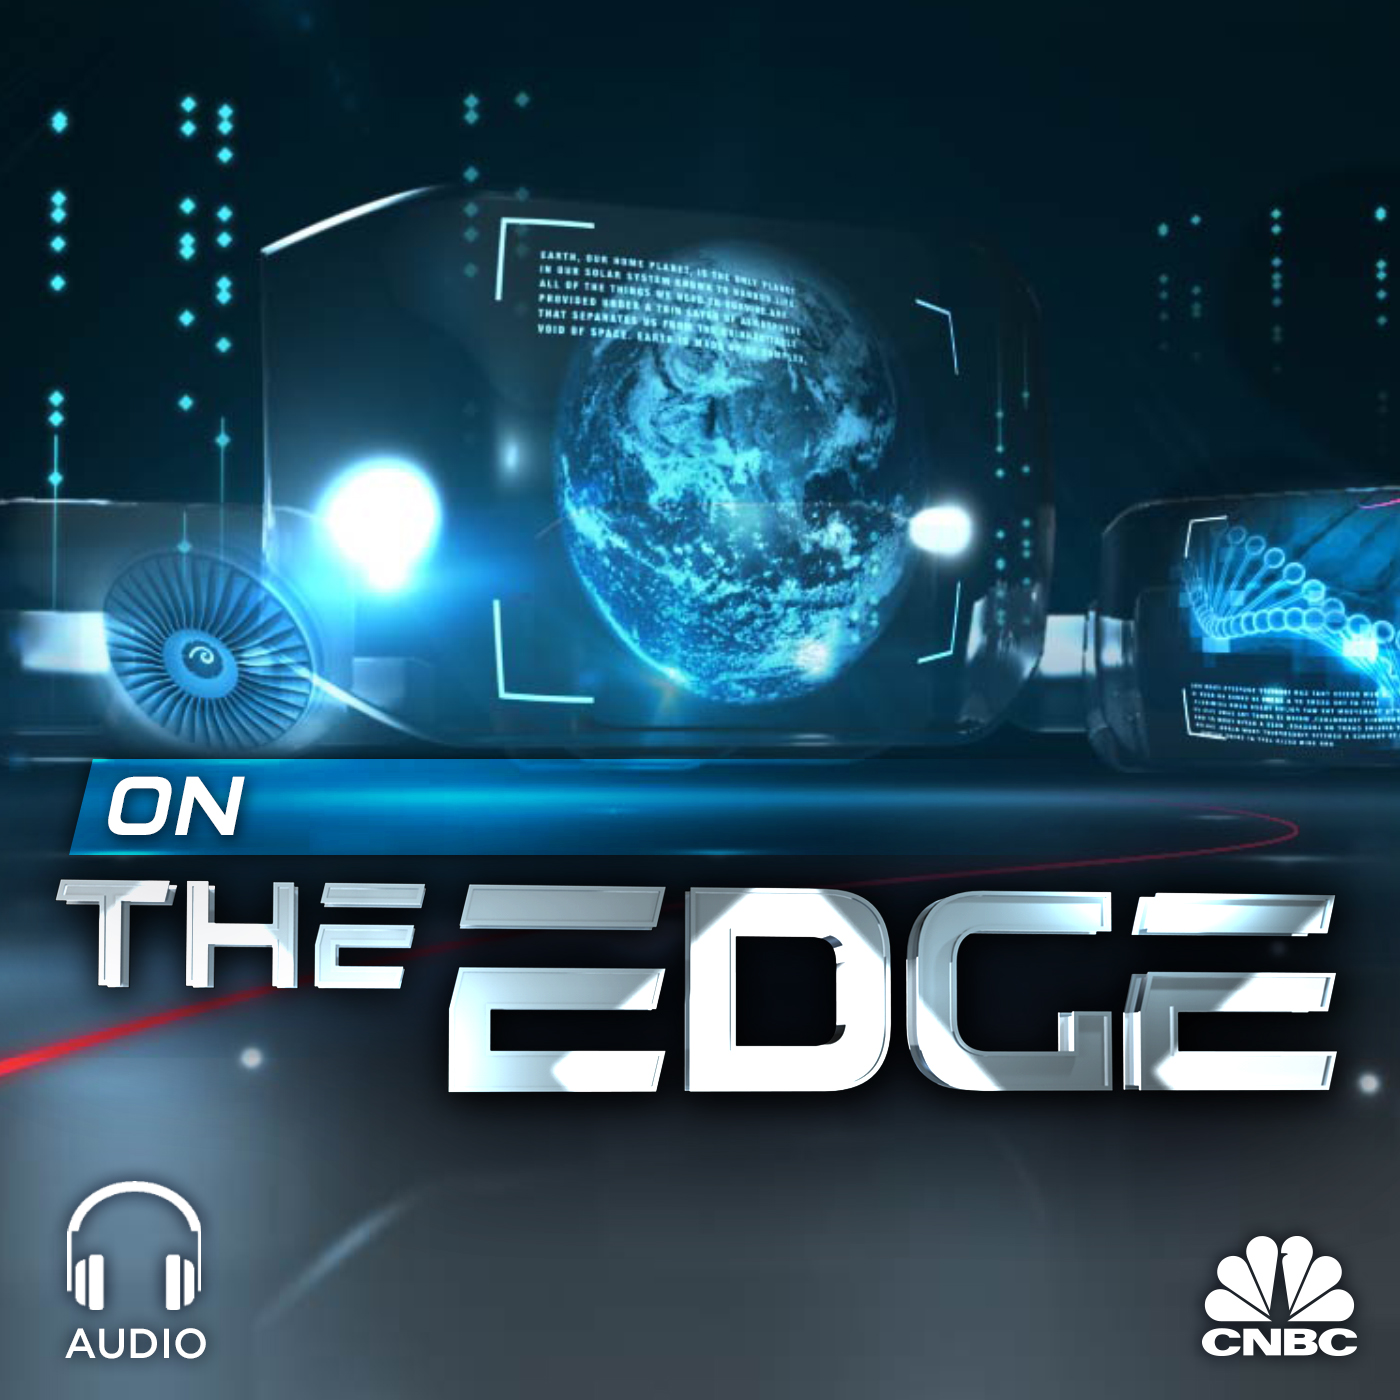 On The Edge - Audio